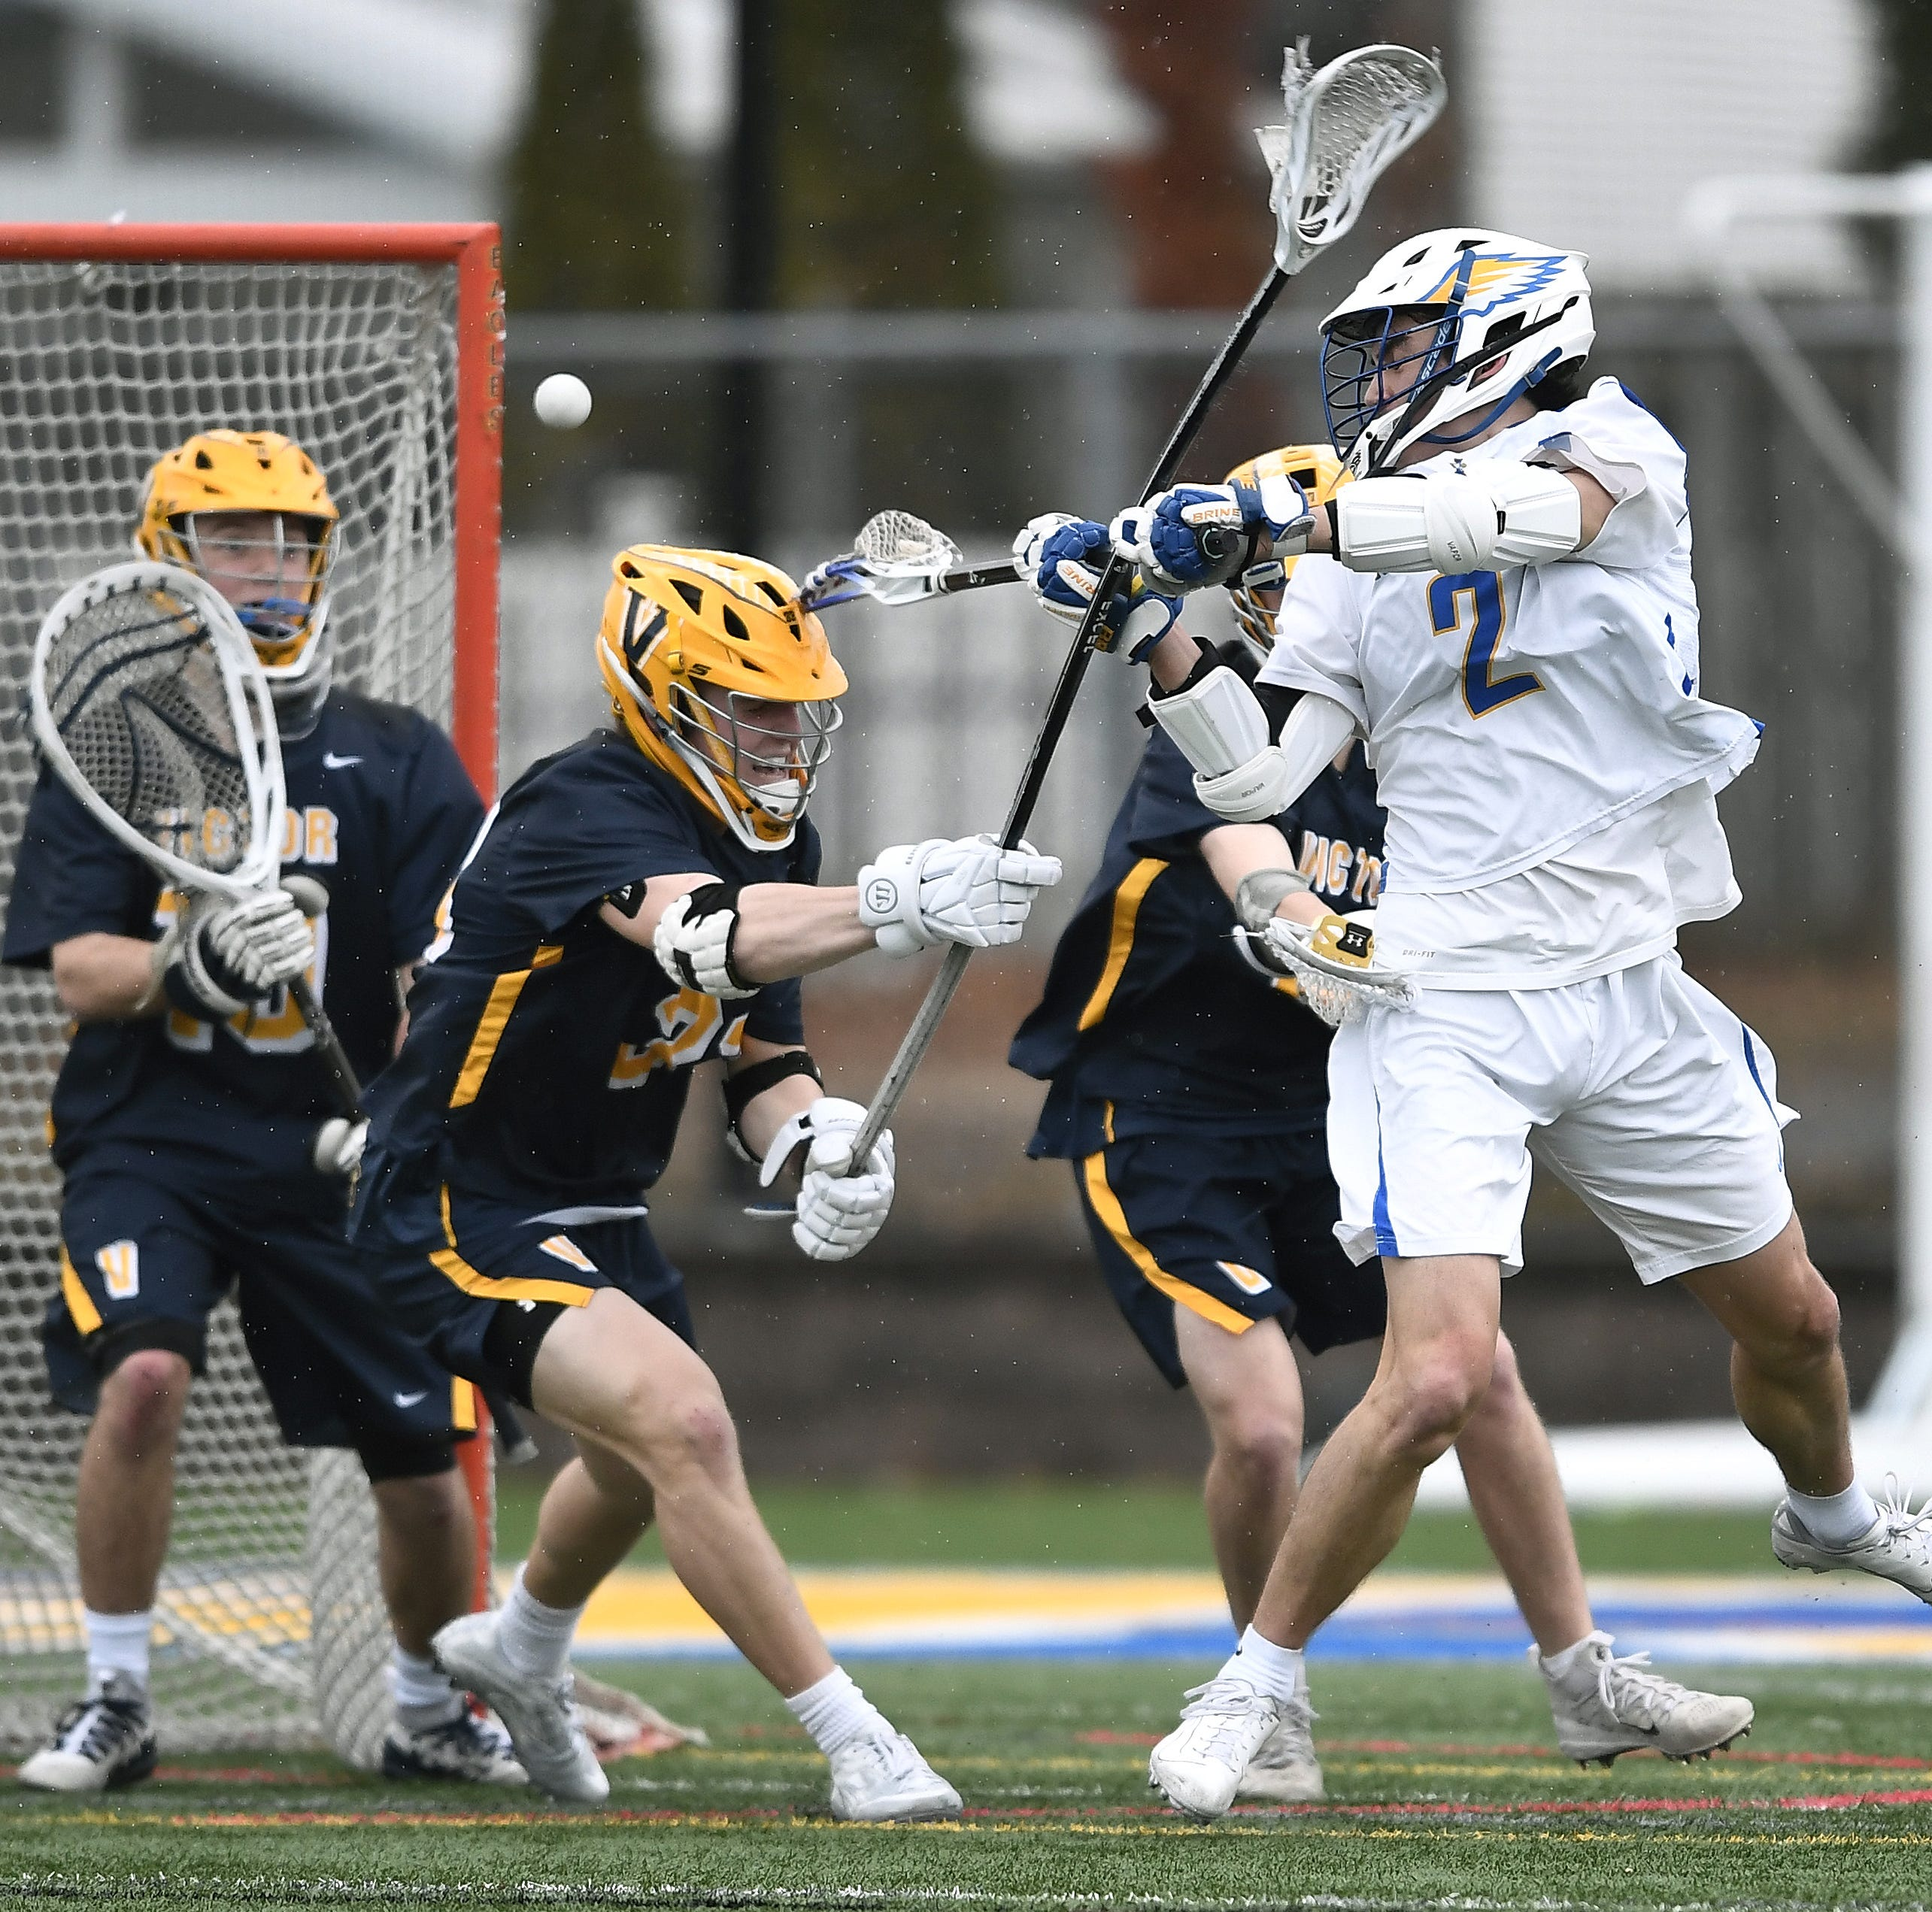 High school scores for Saturday, March 30: Find out how your favorite Section V team fared